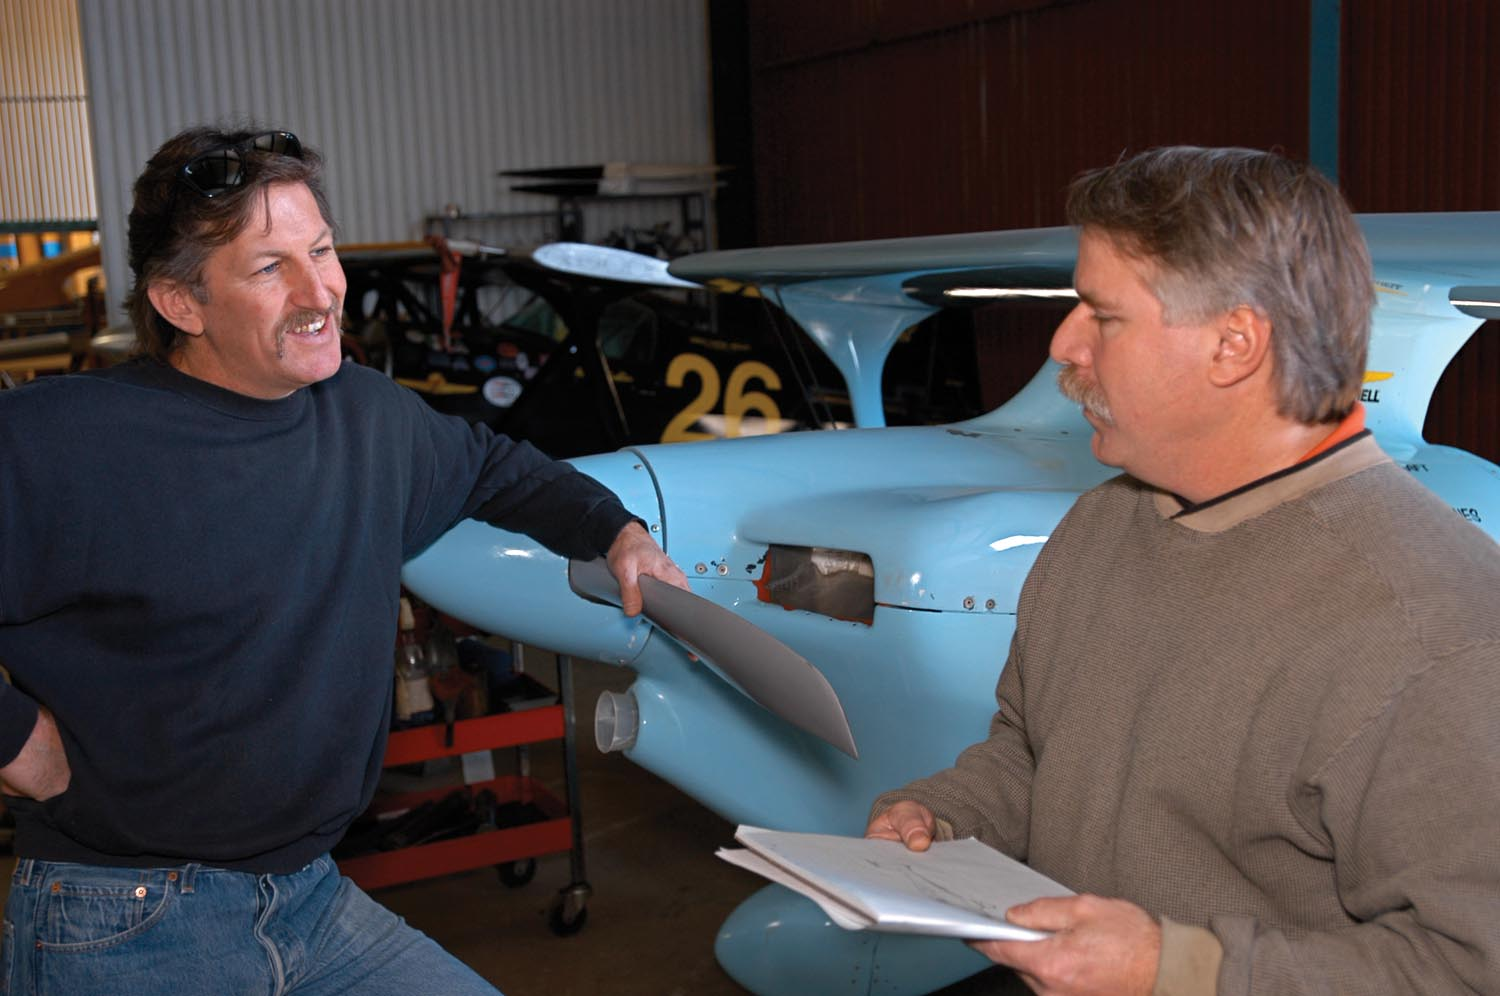 Phantom's futurists, Andy Paterson, left, and Robbie Grove, right, discuss the new air racer during the all-hands meeting in February 2003. Besides composite construction, Andy supplied huge amounts of general labor, and Robbie served as on-call consultant for the trickier engineering bits.